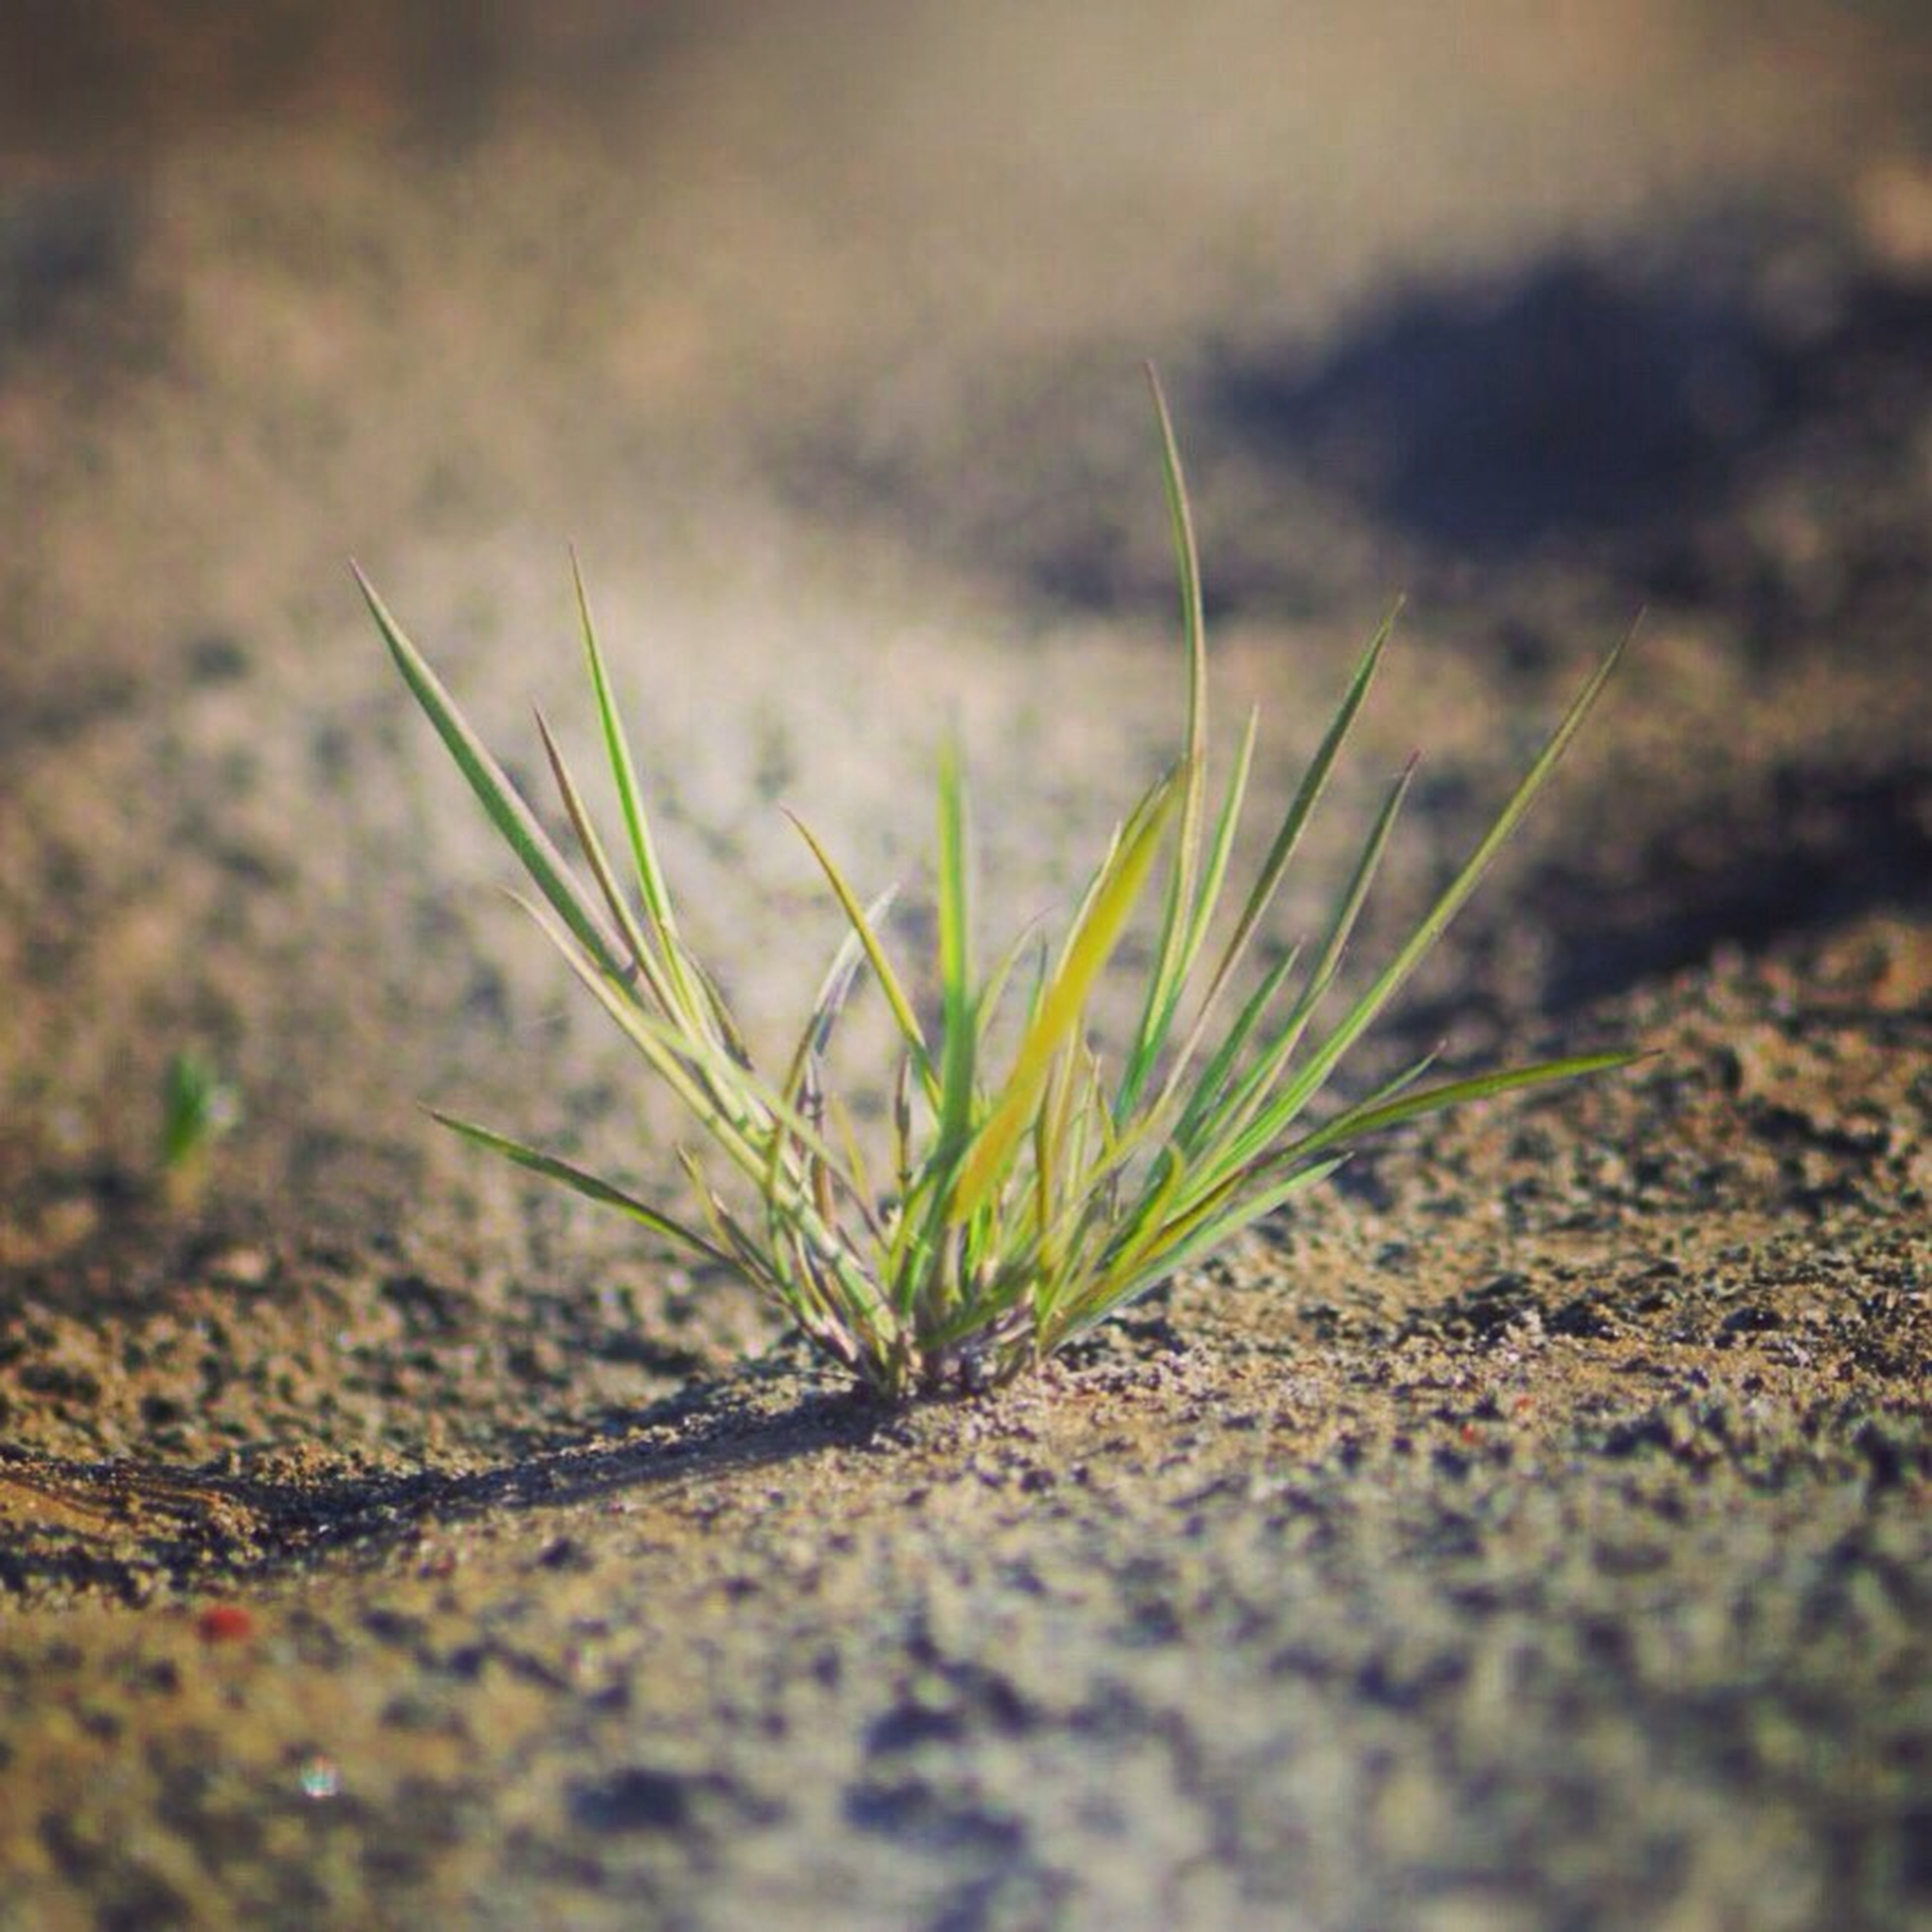 growth, selective focus, plant, close-up, surface level, nature, focus on foreground, growing, leaf, field, green color, stem, fragility, grass, tranquility, day, ground, outdoors, beginnings, no people